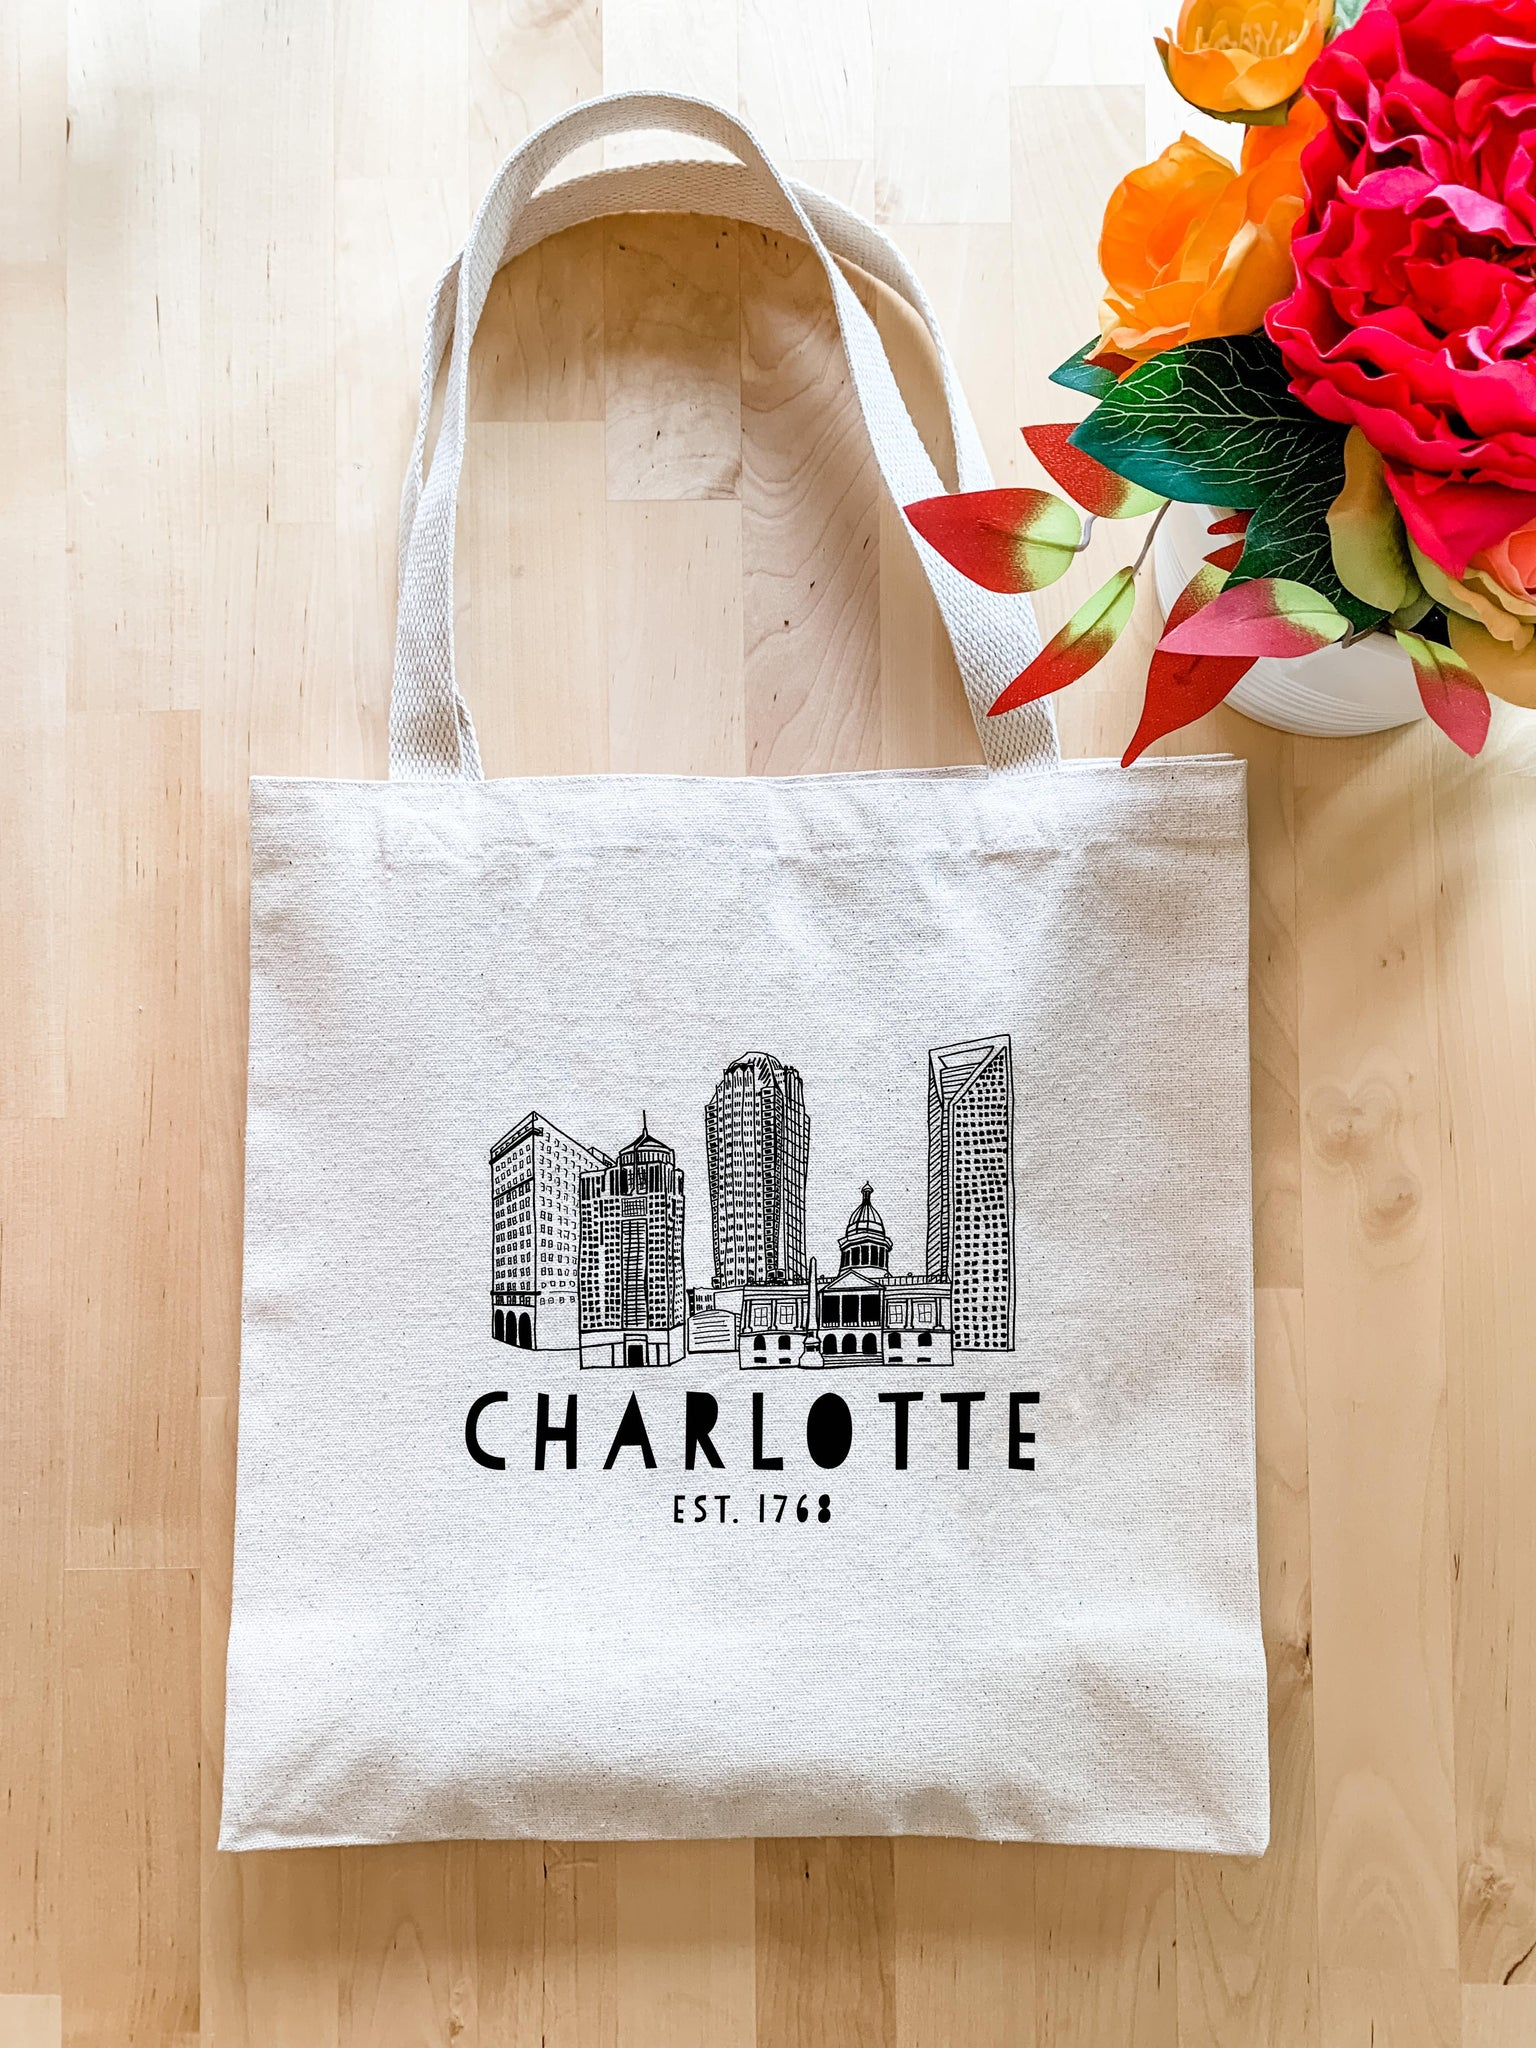 Charlotte, NC - Tote Bag - MoonlightMakers